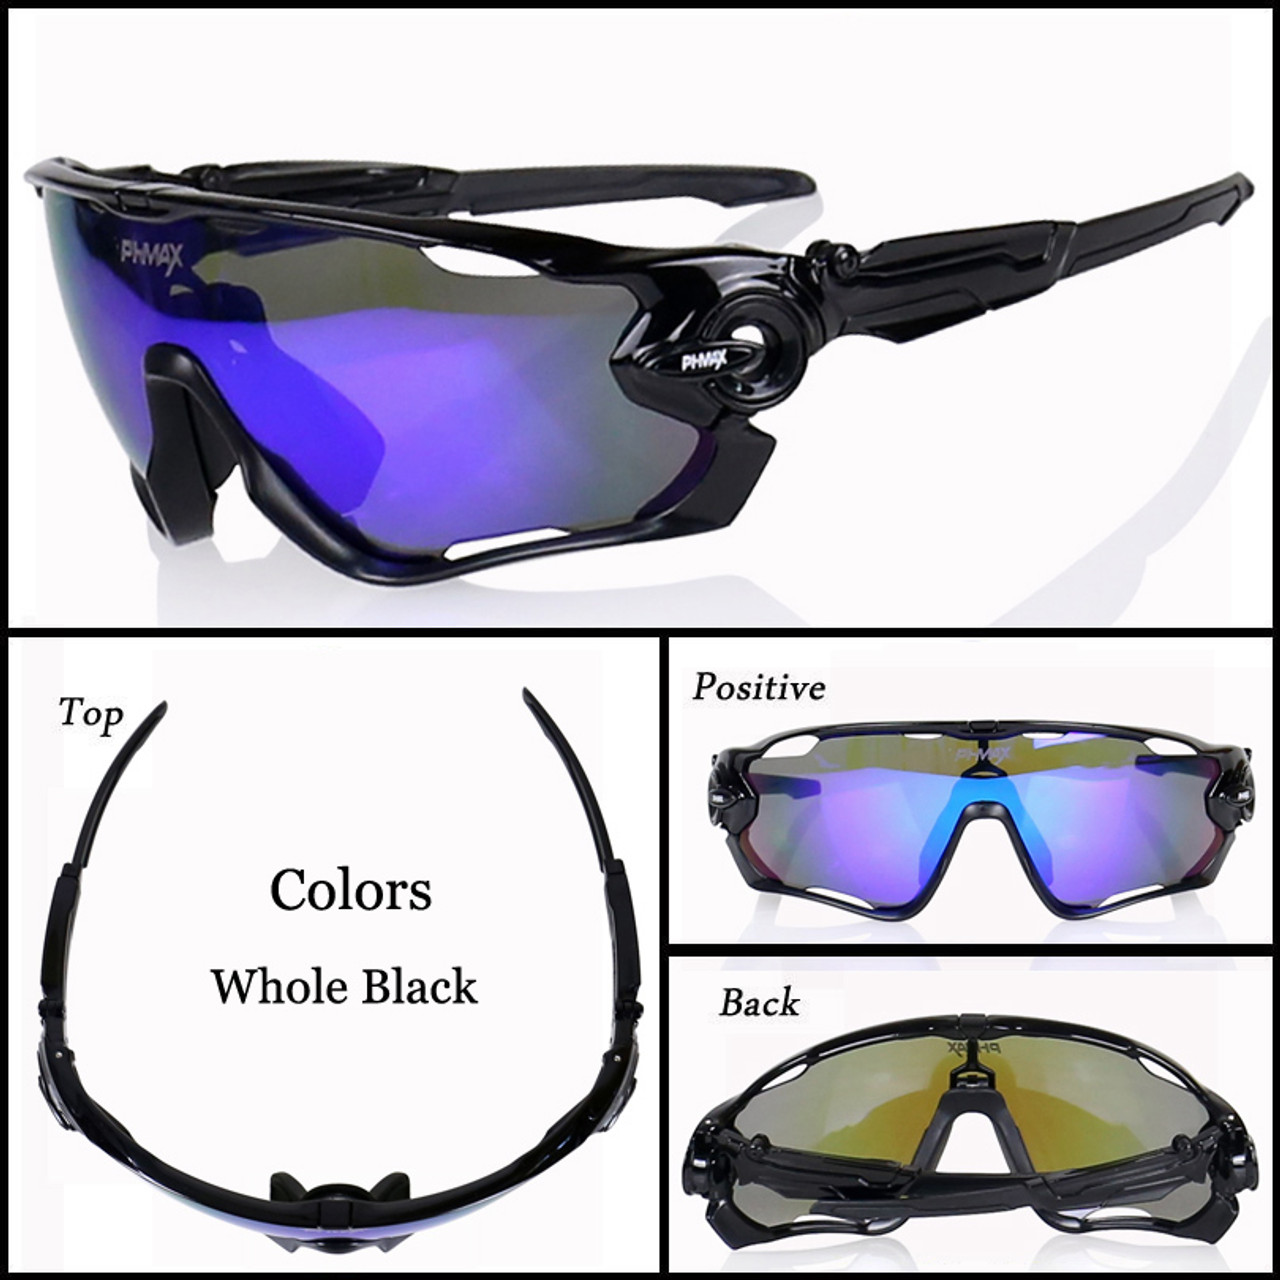 8d9710b0f8 ... PHMAX Polarized Cycling Glasses Bike Outdoor Sports Bicycle Sunglasses  Goggles 5 Groups of Lenses Eyewear Gafas ...